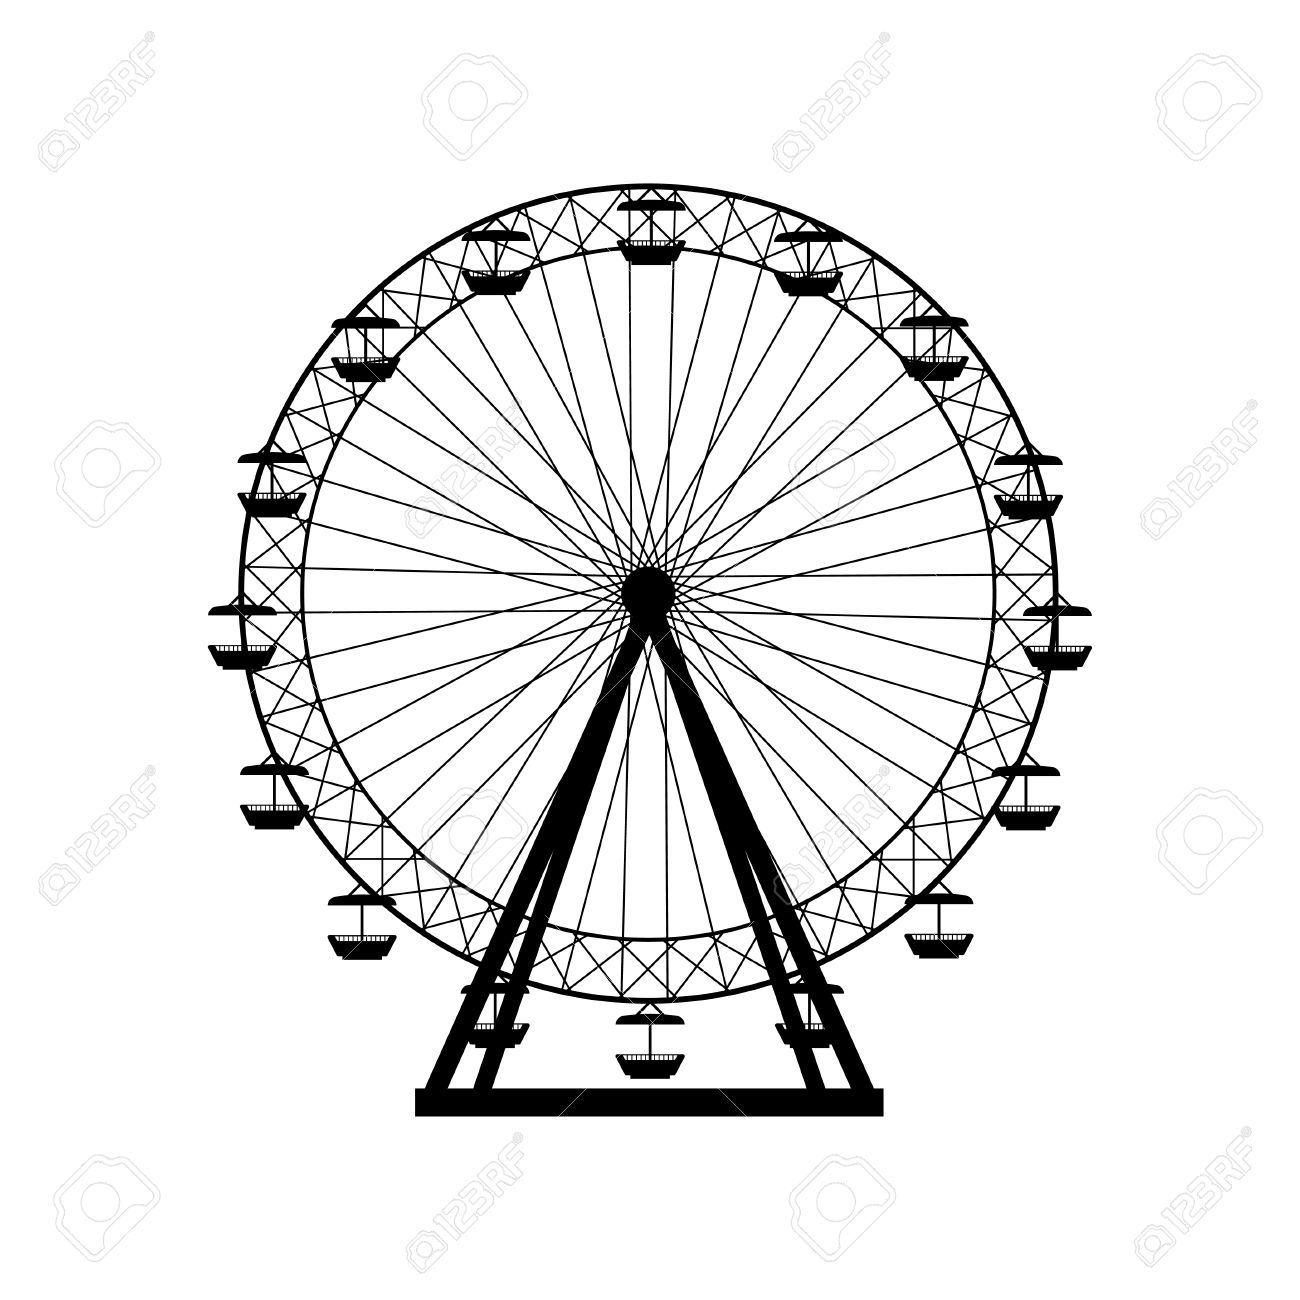 Ferris Wheel Silhouette Circle Carnival Funfair Background Carousel Royalty Free Cliparts Vectors And Stock Illustration Image 57893517